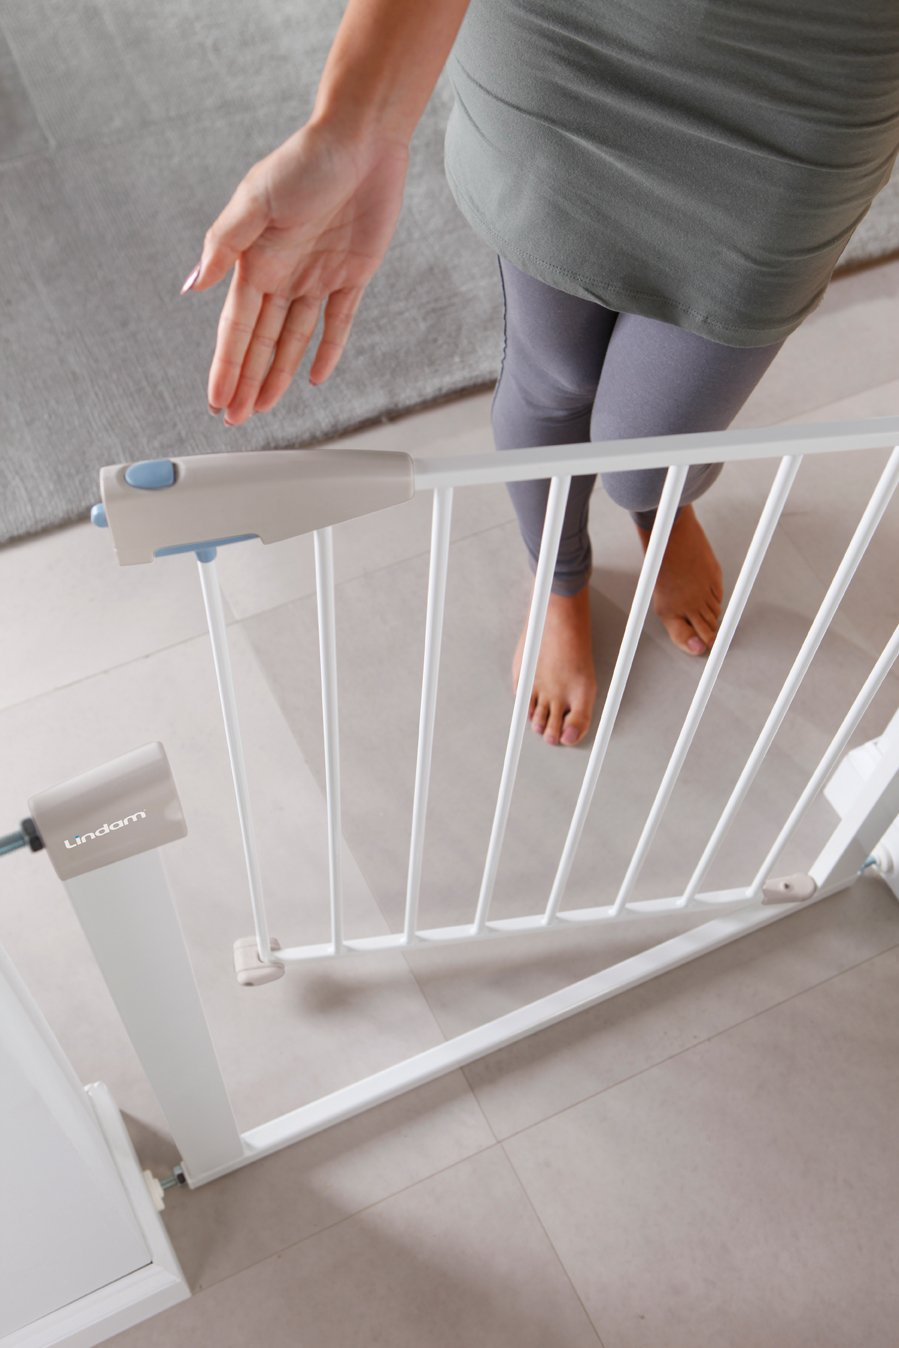 Lindam Sure Shut Porte Pressure Fit Safety Gate, White, 76-82 cm Lindam Easy close, push to shut closing mechanism; squeeze and lift handle for easy one handed adult opening Four point pressure fit - U shaped power frame provides solid pressure fitting; pressure indicator assures baby gate is installed correctly One way opening for use on bottom of stairs; two way opening for use in doorways providing maximum flexibility; optional second lock at base of baby gate 4